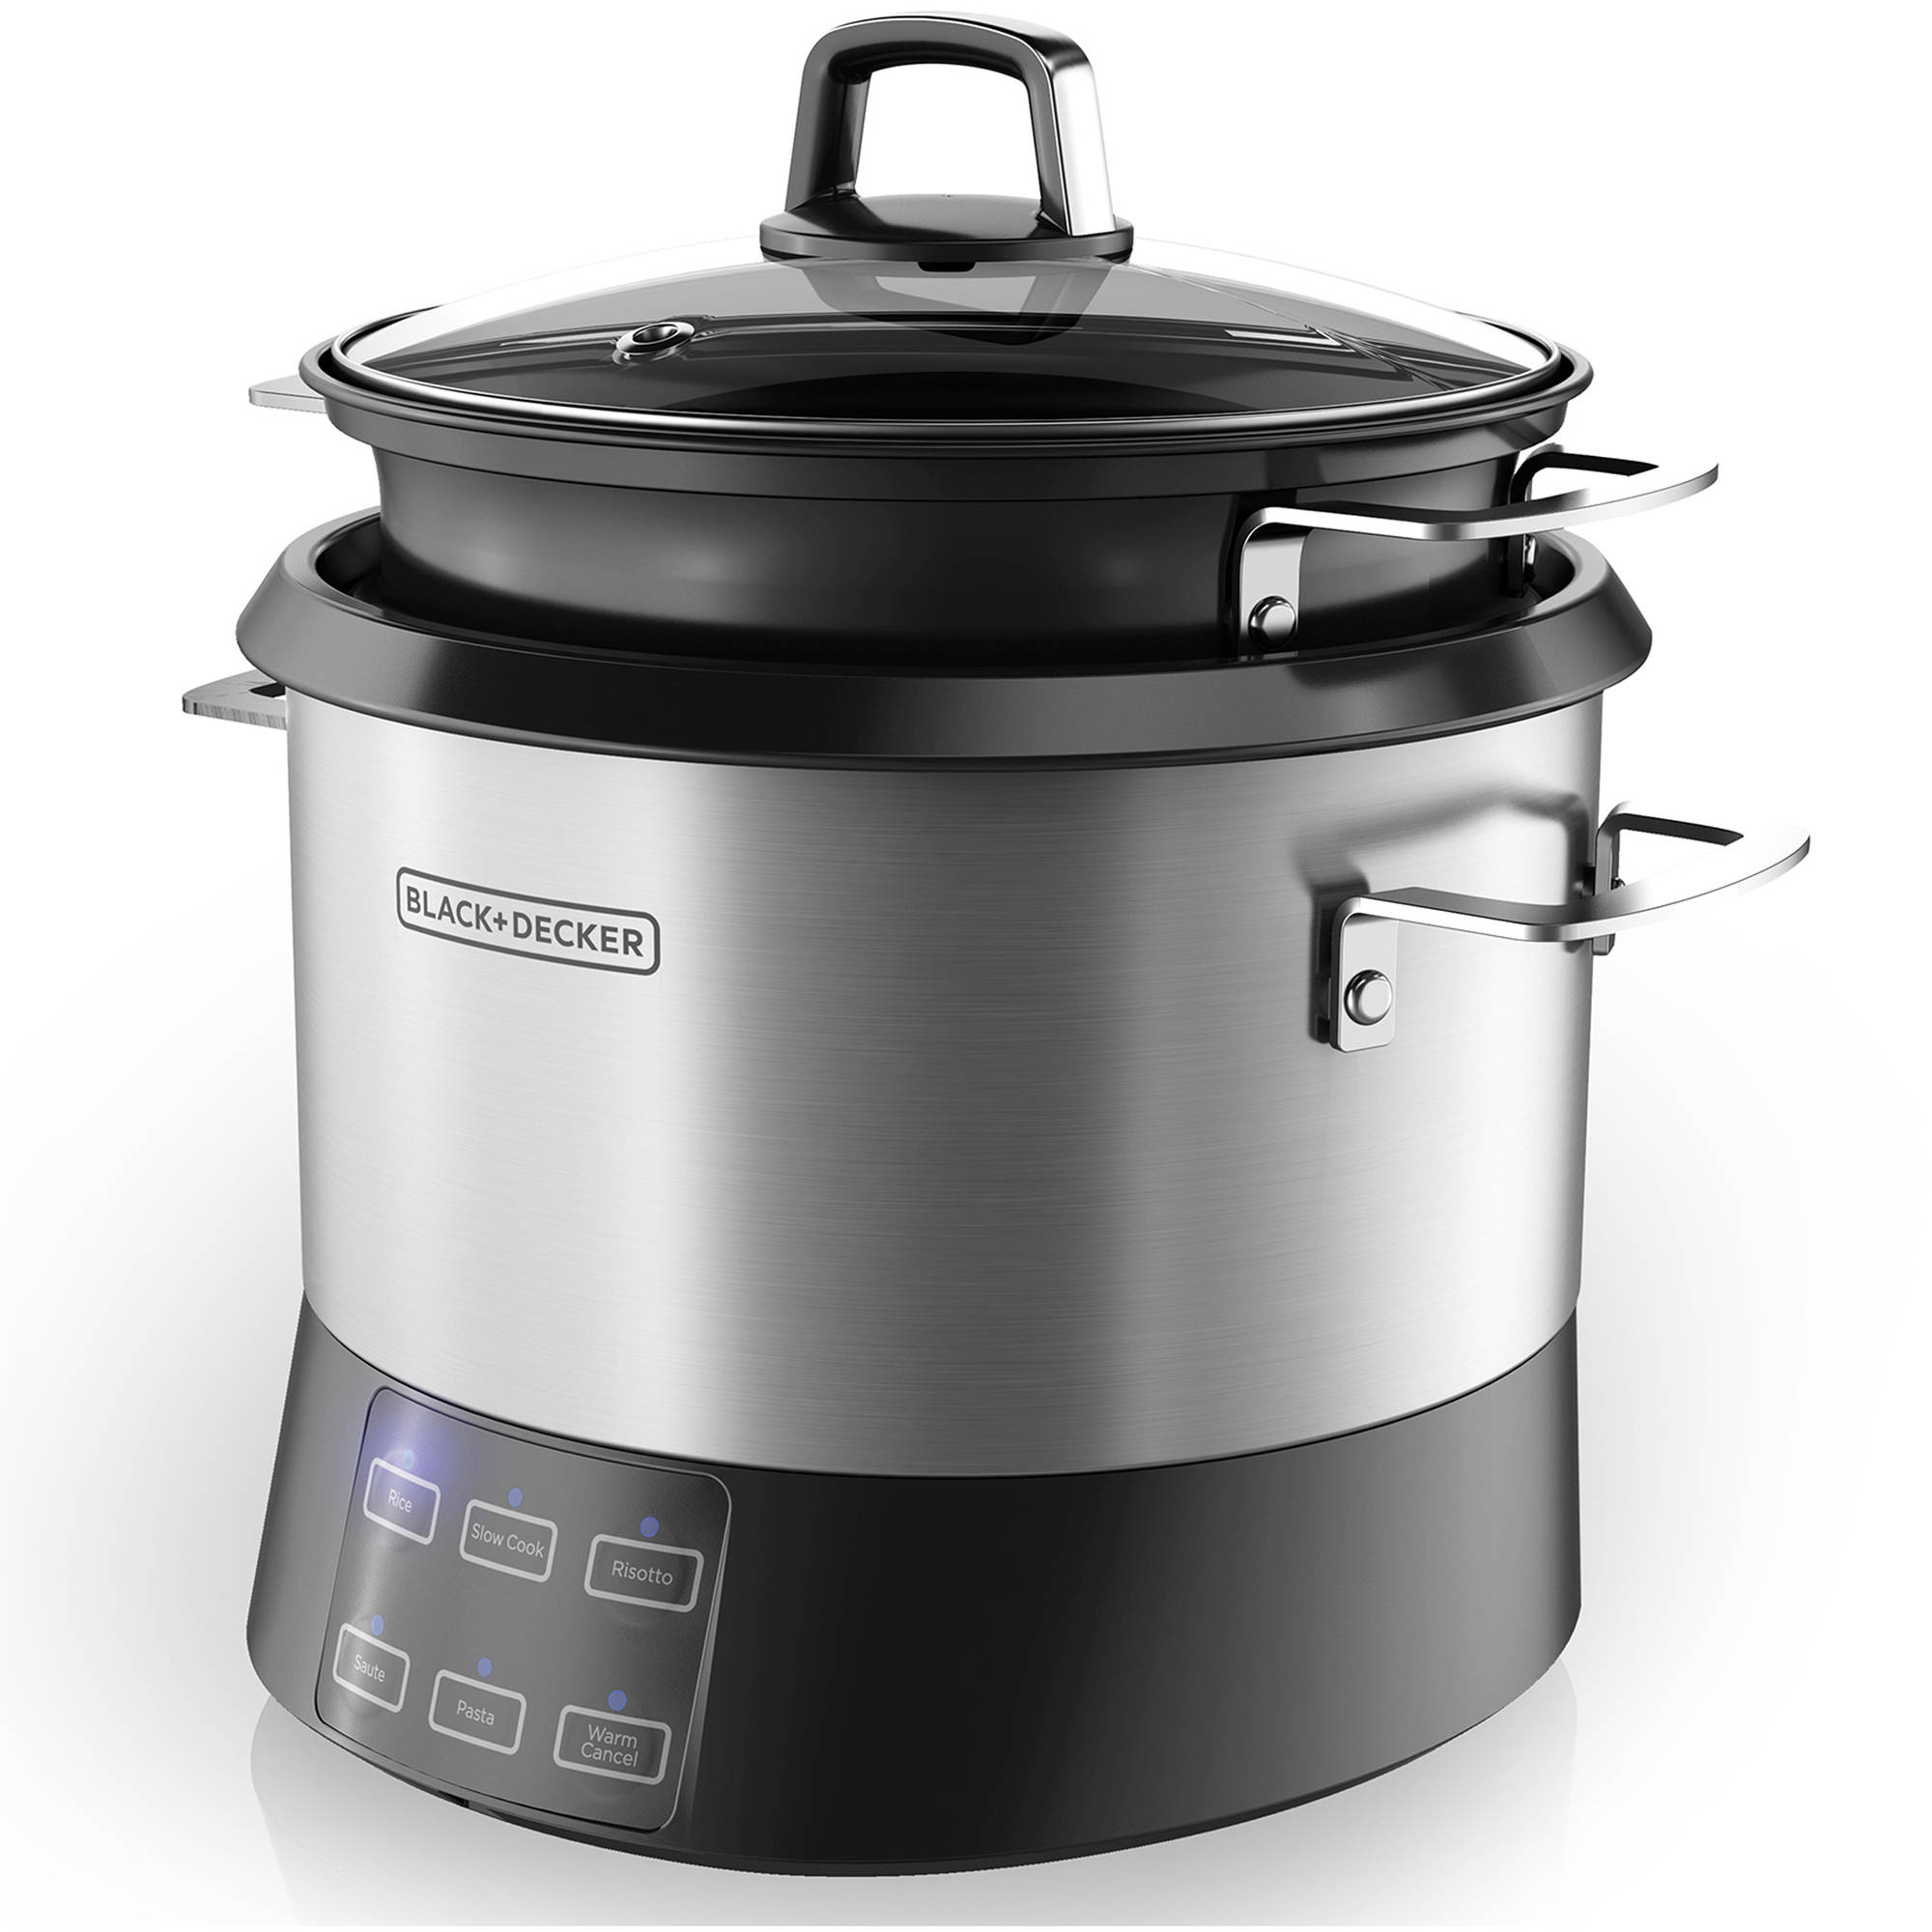 Since many people use a slow cooker for all-day cooking, the ability to actually hold a low temperature is the most important feature a slow cooker can offer, and it's what really sets this one.